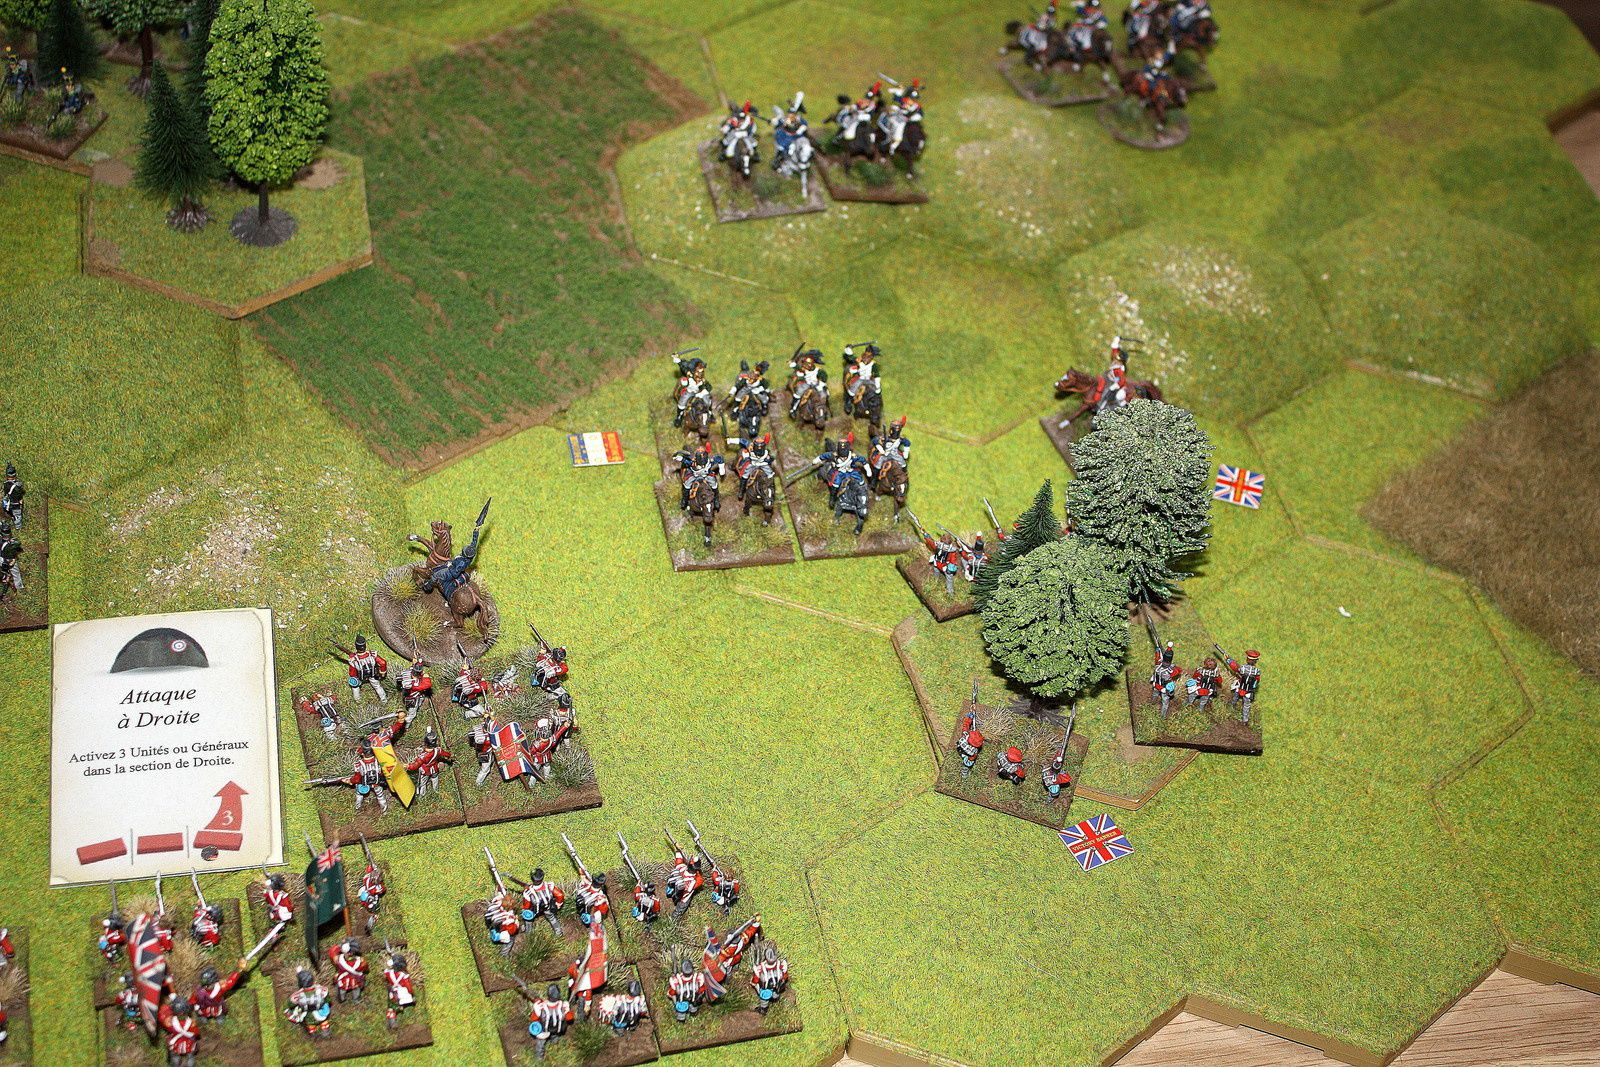 Bataille d'initiation à Commands and Colors Napoleonics